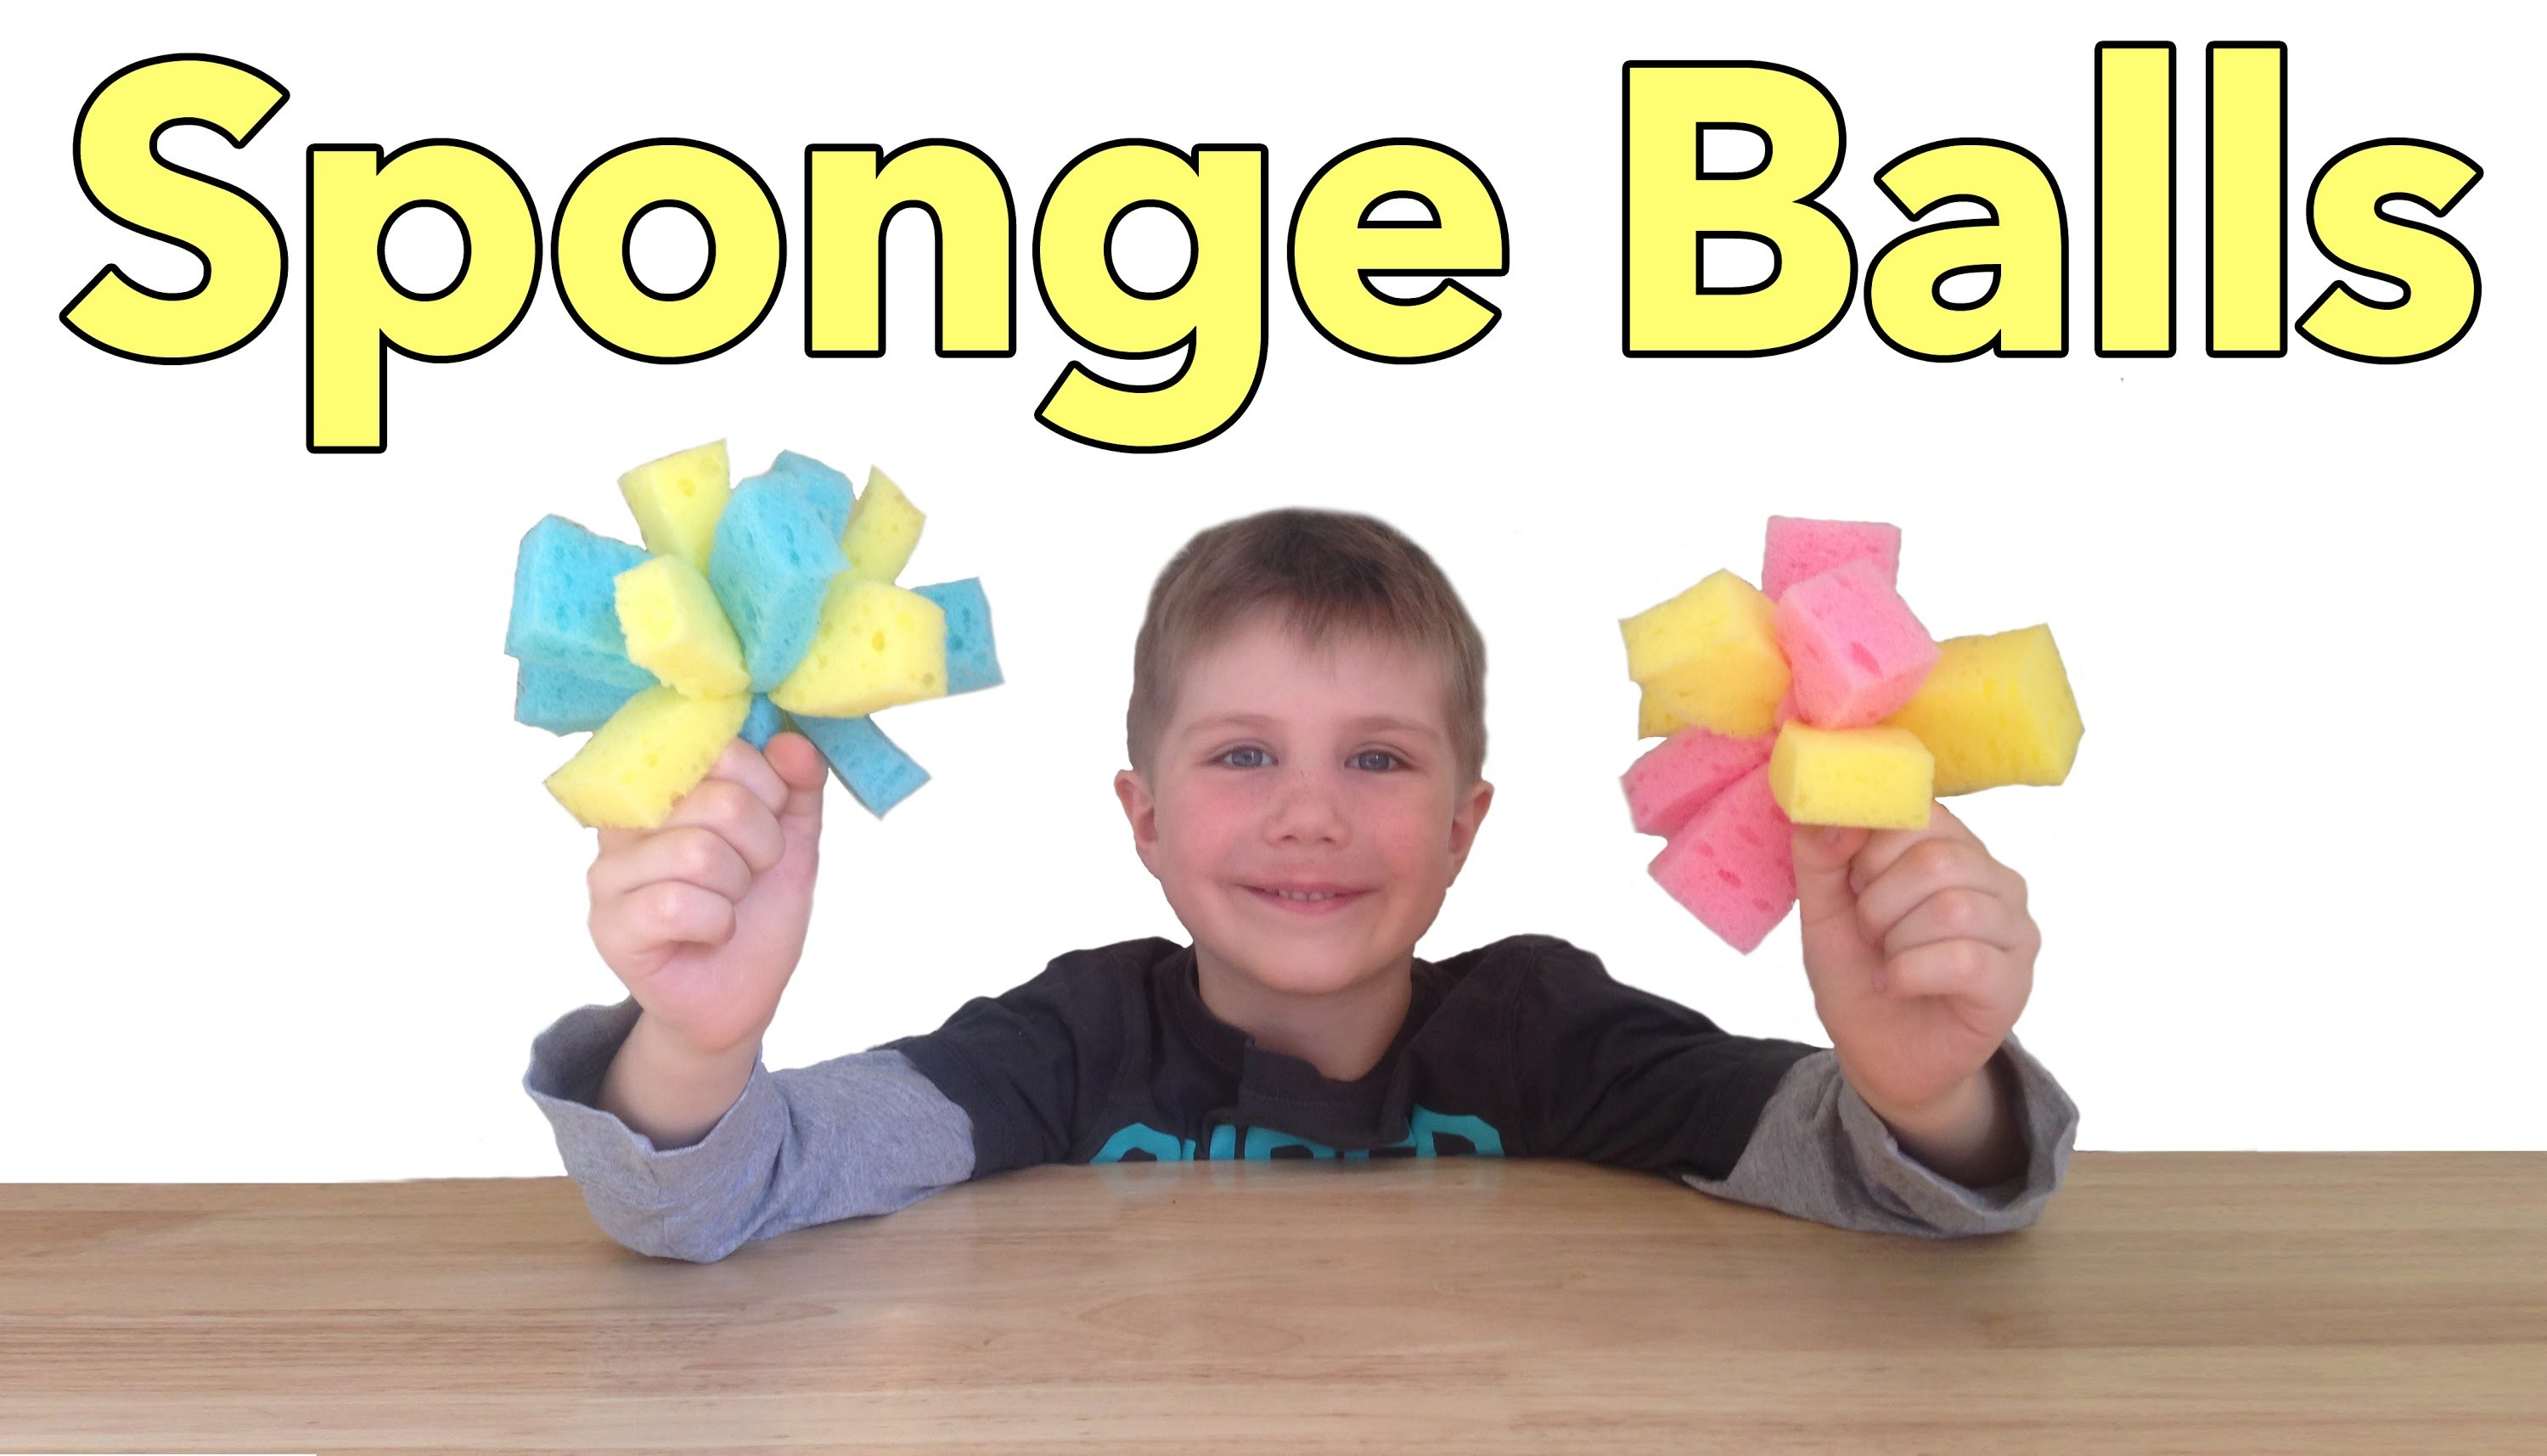 How to Make a Sponge Ball - Easy Craft For Kids